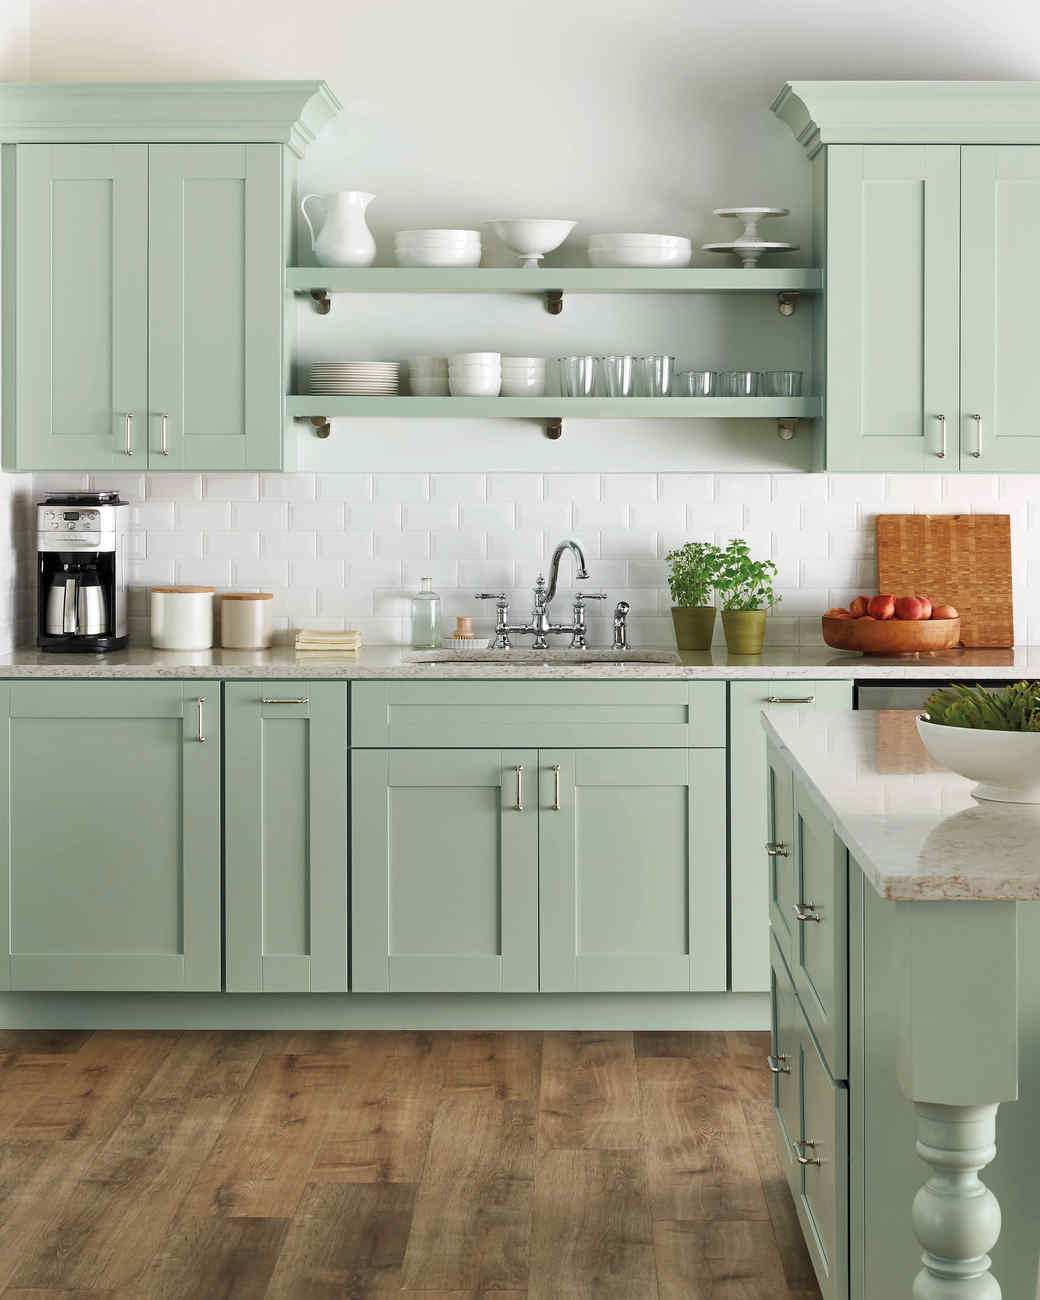 Exceptionnel Home Depot Select Kitchen Style Green Cabinets